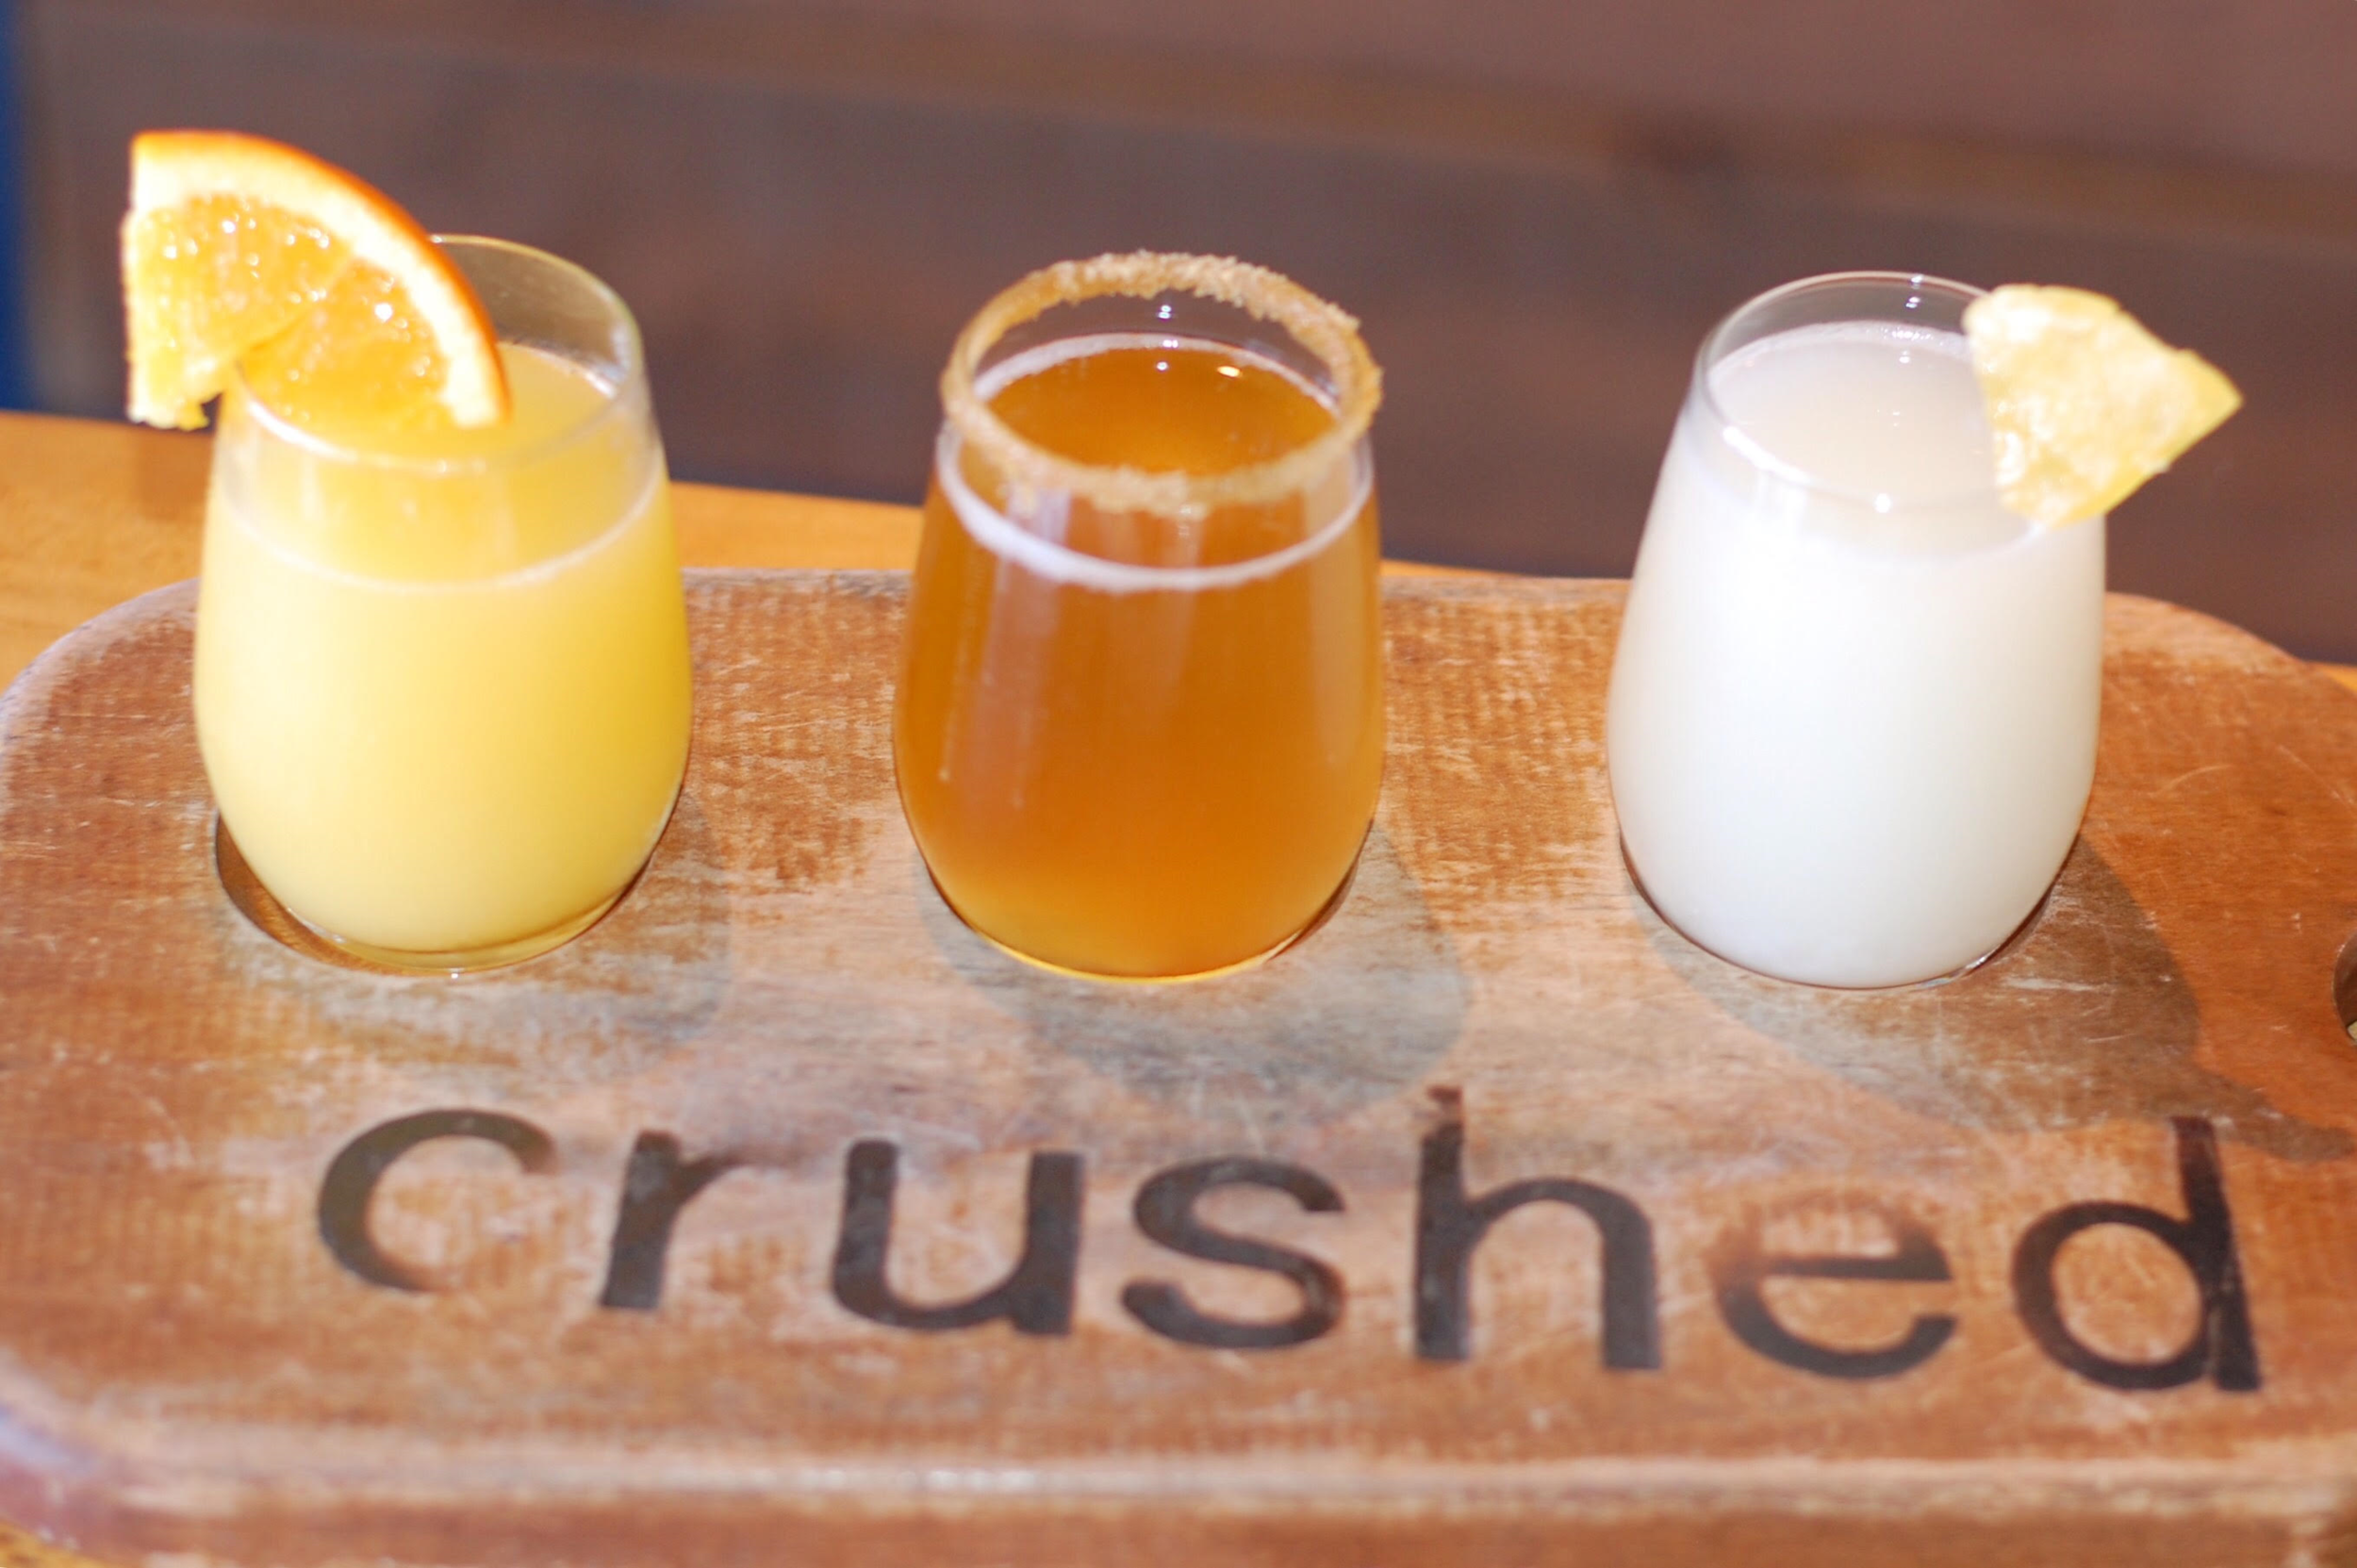 7. Crushed: Mimosa Flights - Crushed, located in Pacific Beach, was made famous for their photogenic mimosa flights. These flights blew up on Instagram, as everyone wanted 'that' photo. They taste as good as they look with their unique flavors- classic with fresh OJ, apple cider, pina colada, lavender, rosemary, and elderflower! In addition to the best mimosas, Crushed also has tasty bites to go along with the sips! Bennies are the most popular dishes here. We had the prosciutto bennie (benedict), along with their stinky goat cheese flatbread! (Ally from GoSeekExplore pictured above with me!)